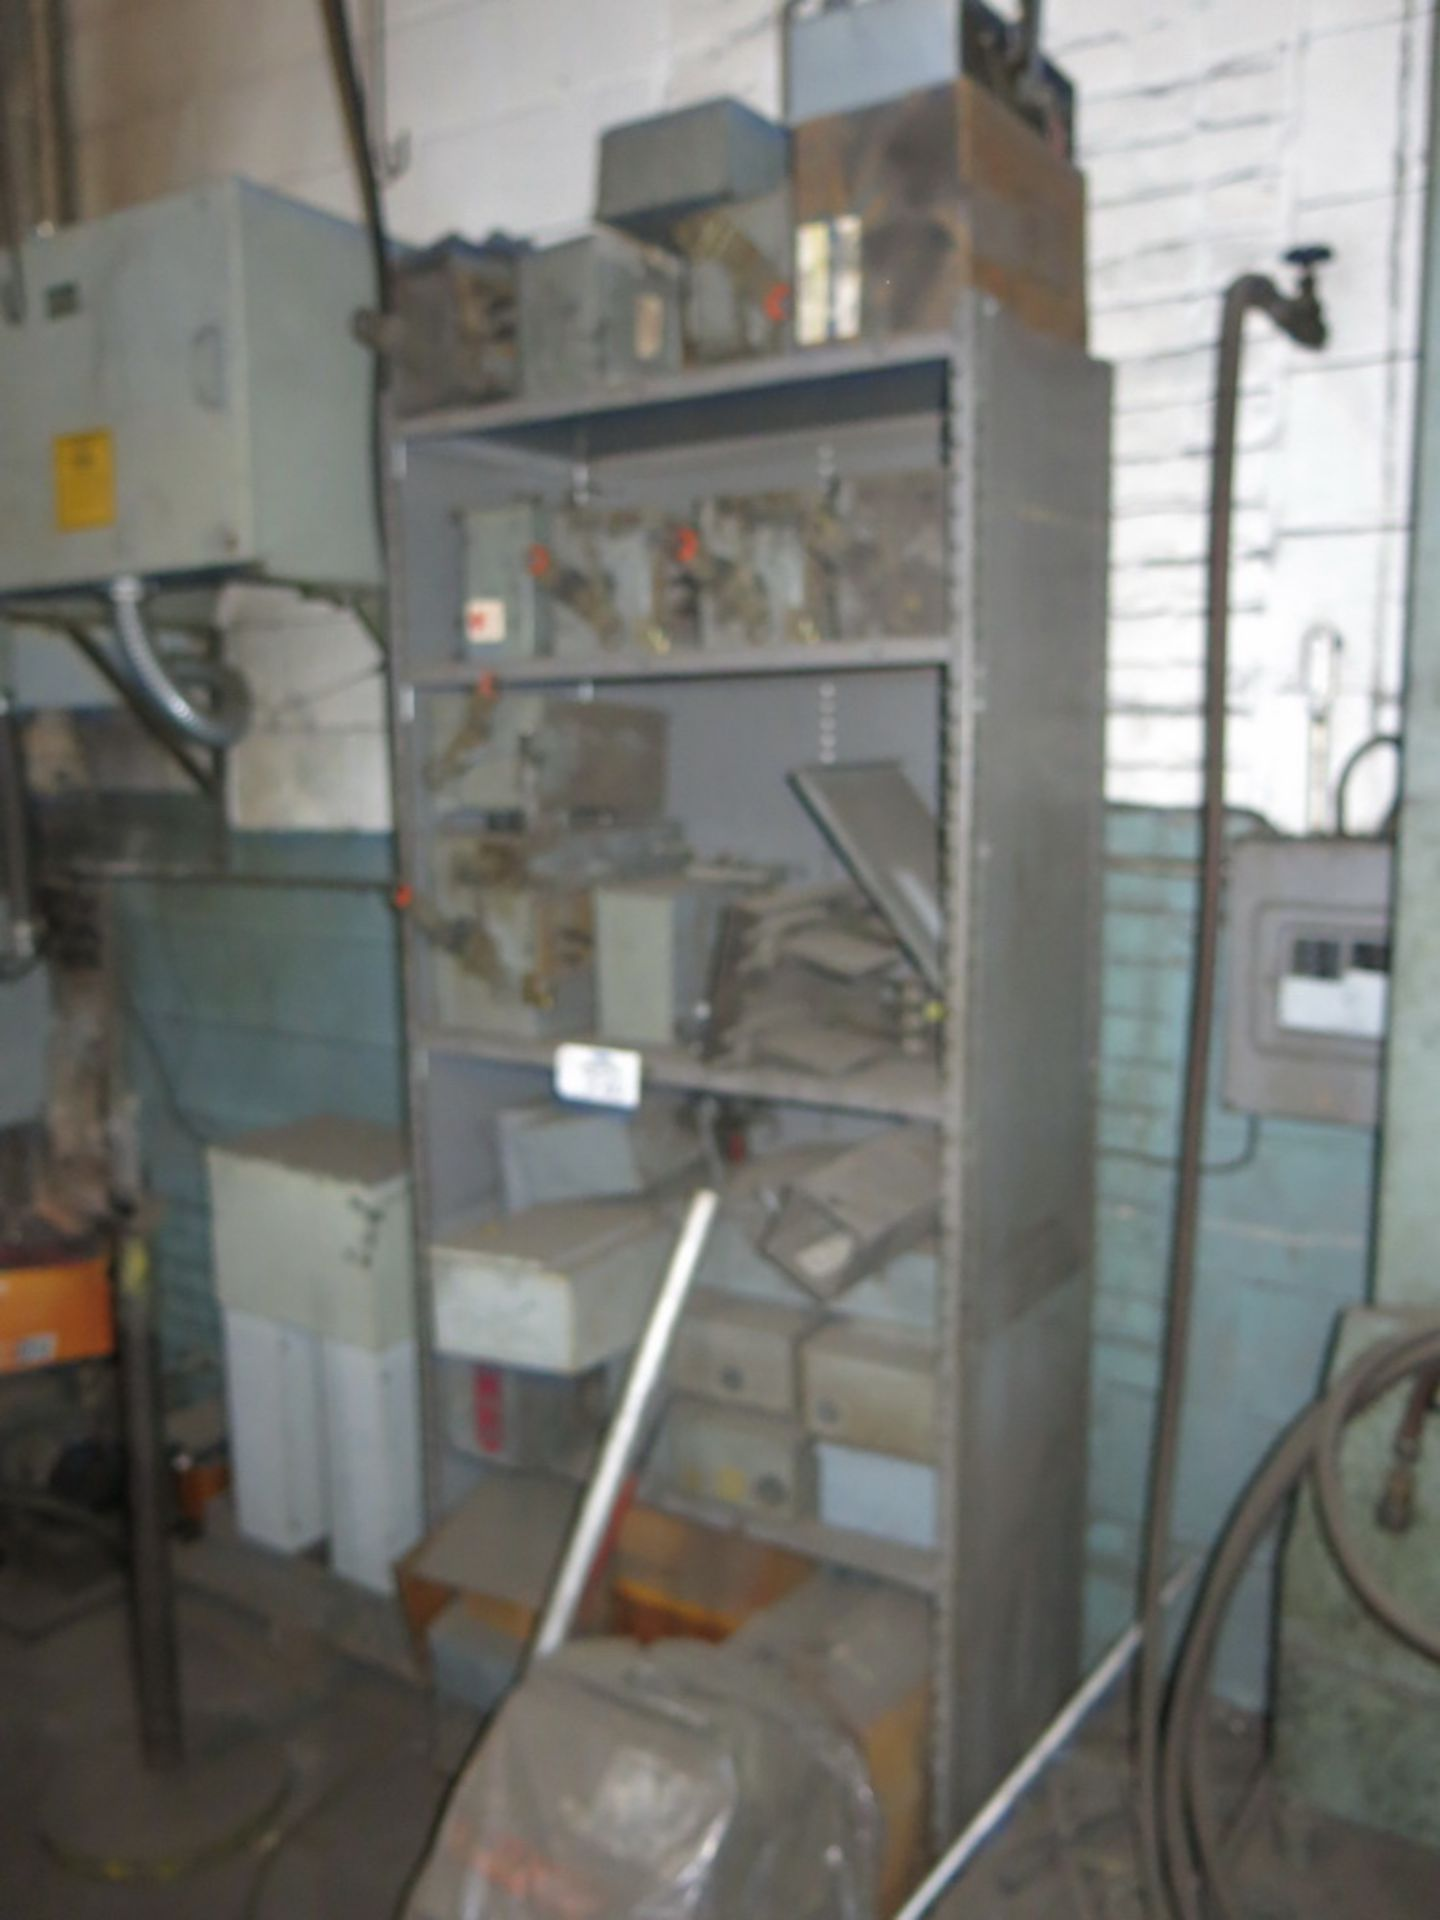 Remaining Contents of Air Compressor Room - Image 3 of 5